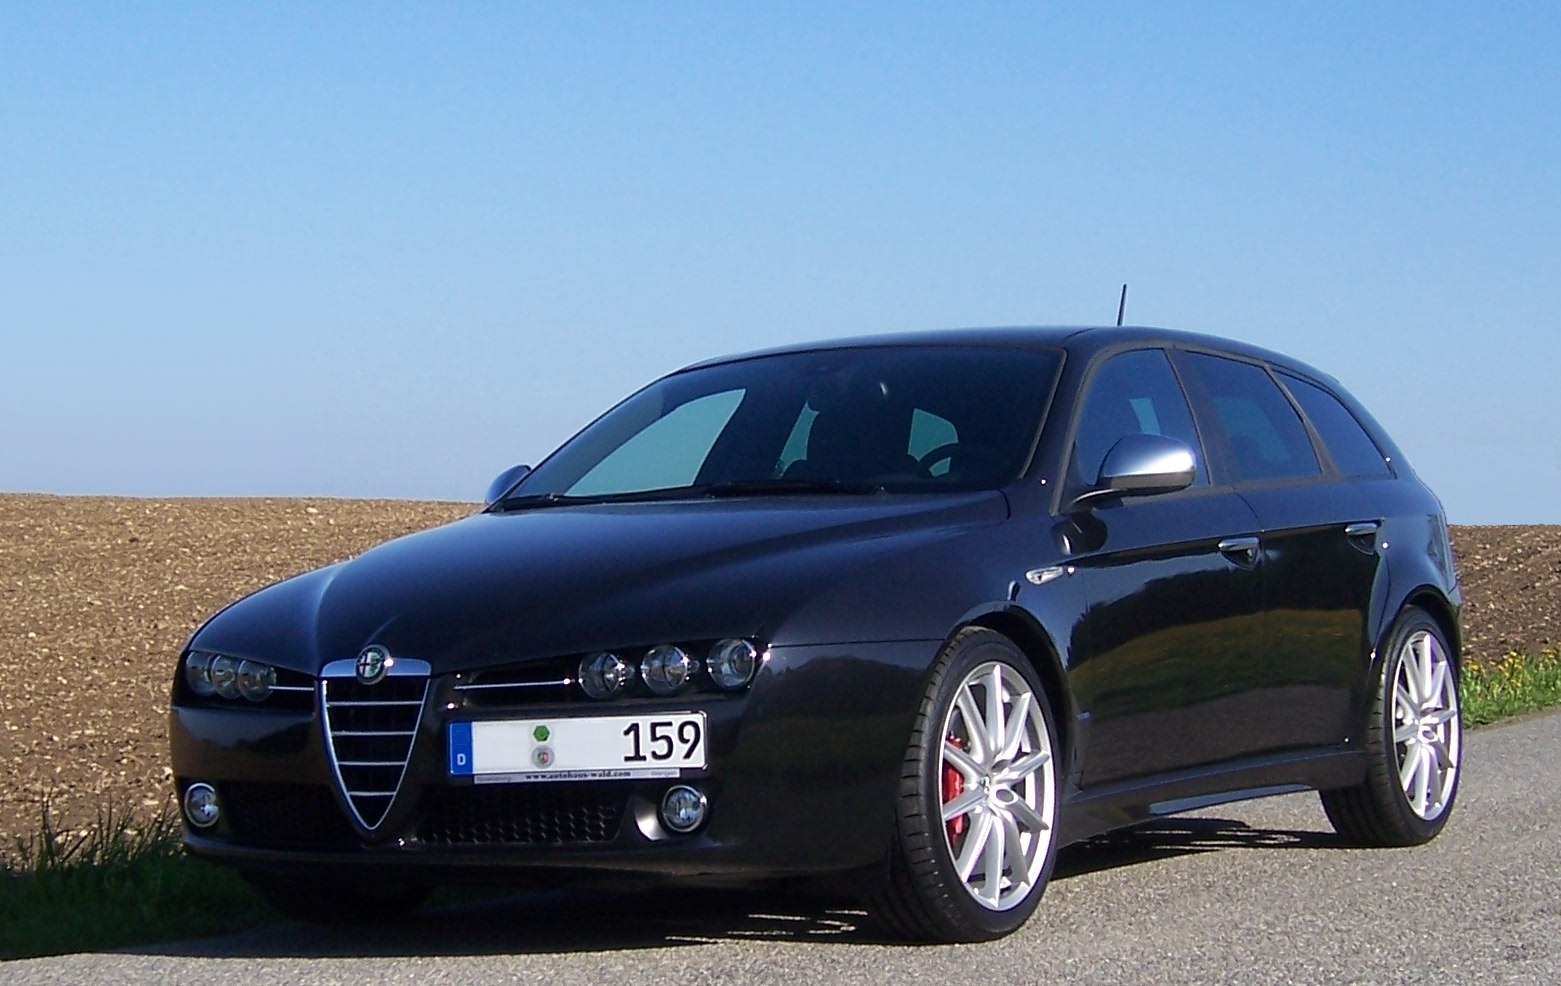 file alfa romeo 159 sw wikimedia commons. Black Bedroom Furniture Sets. Home Design Ideas